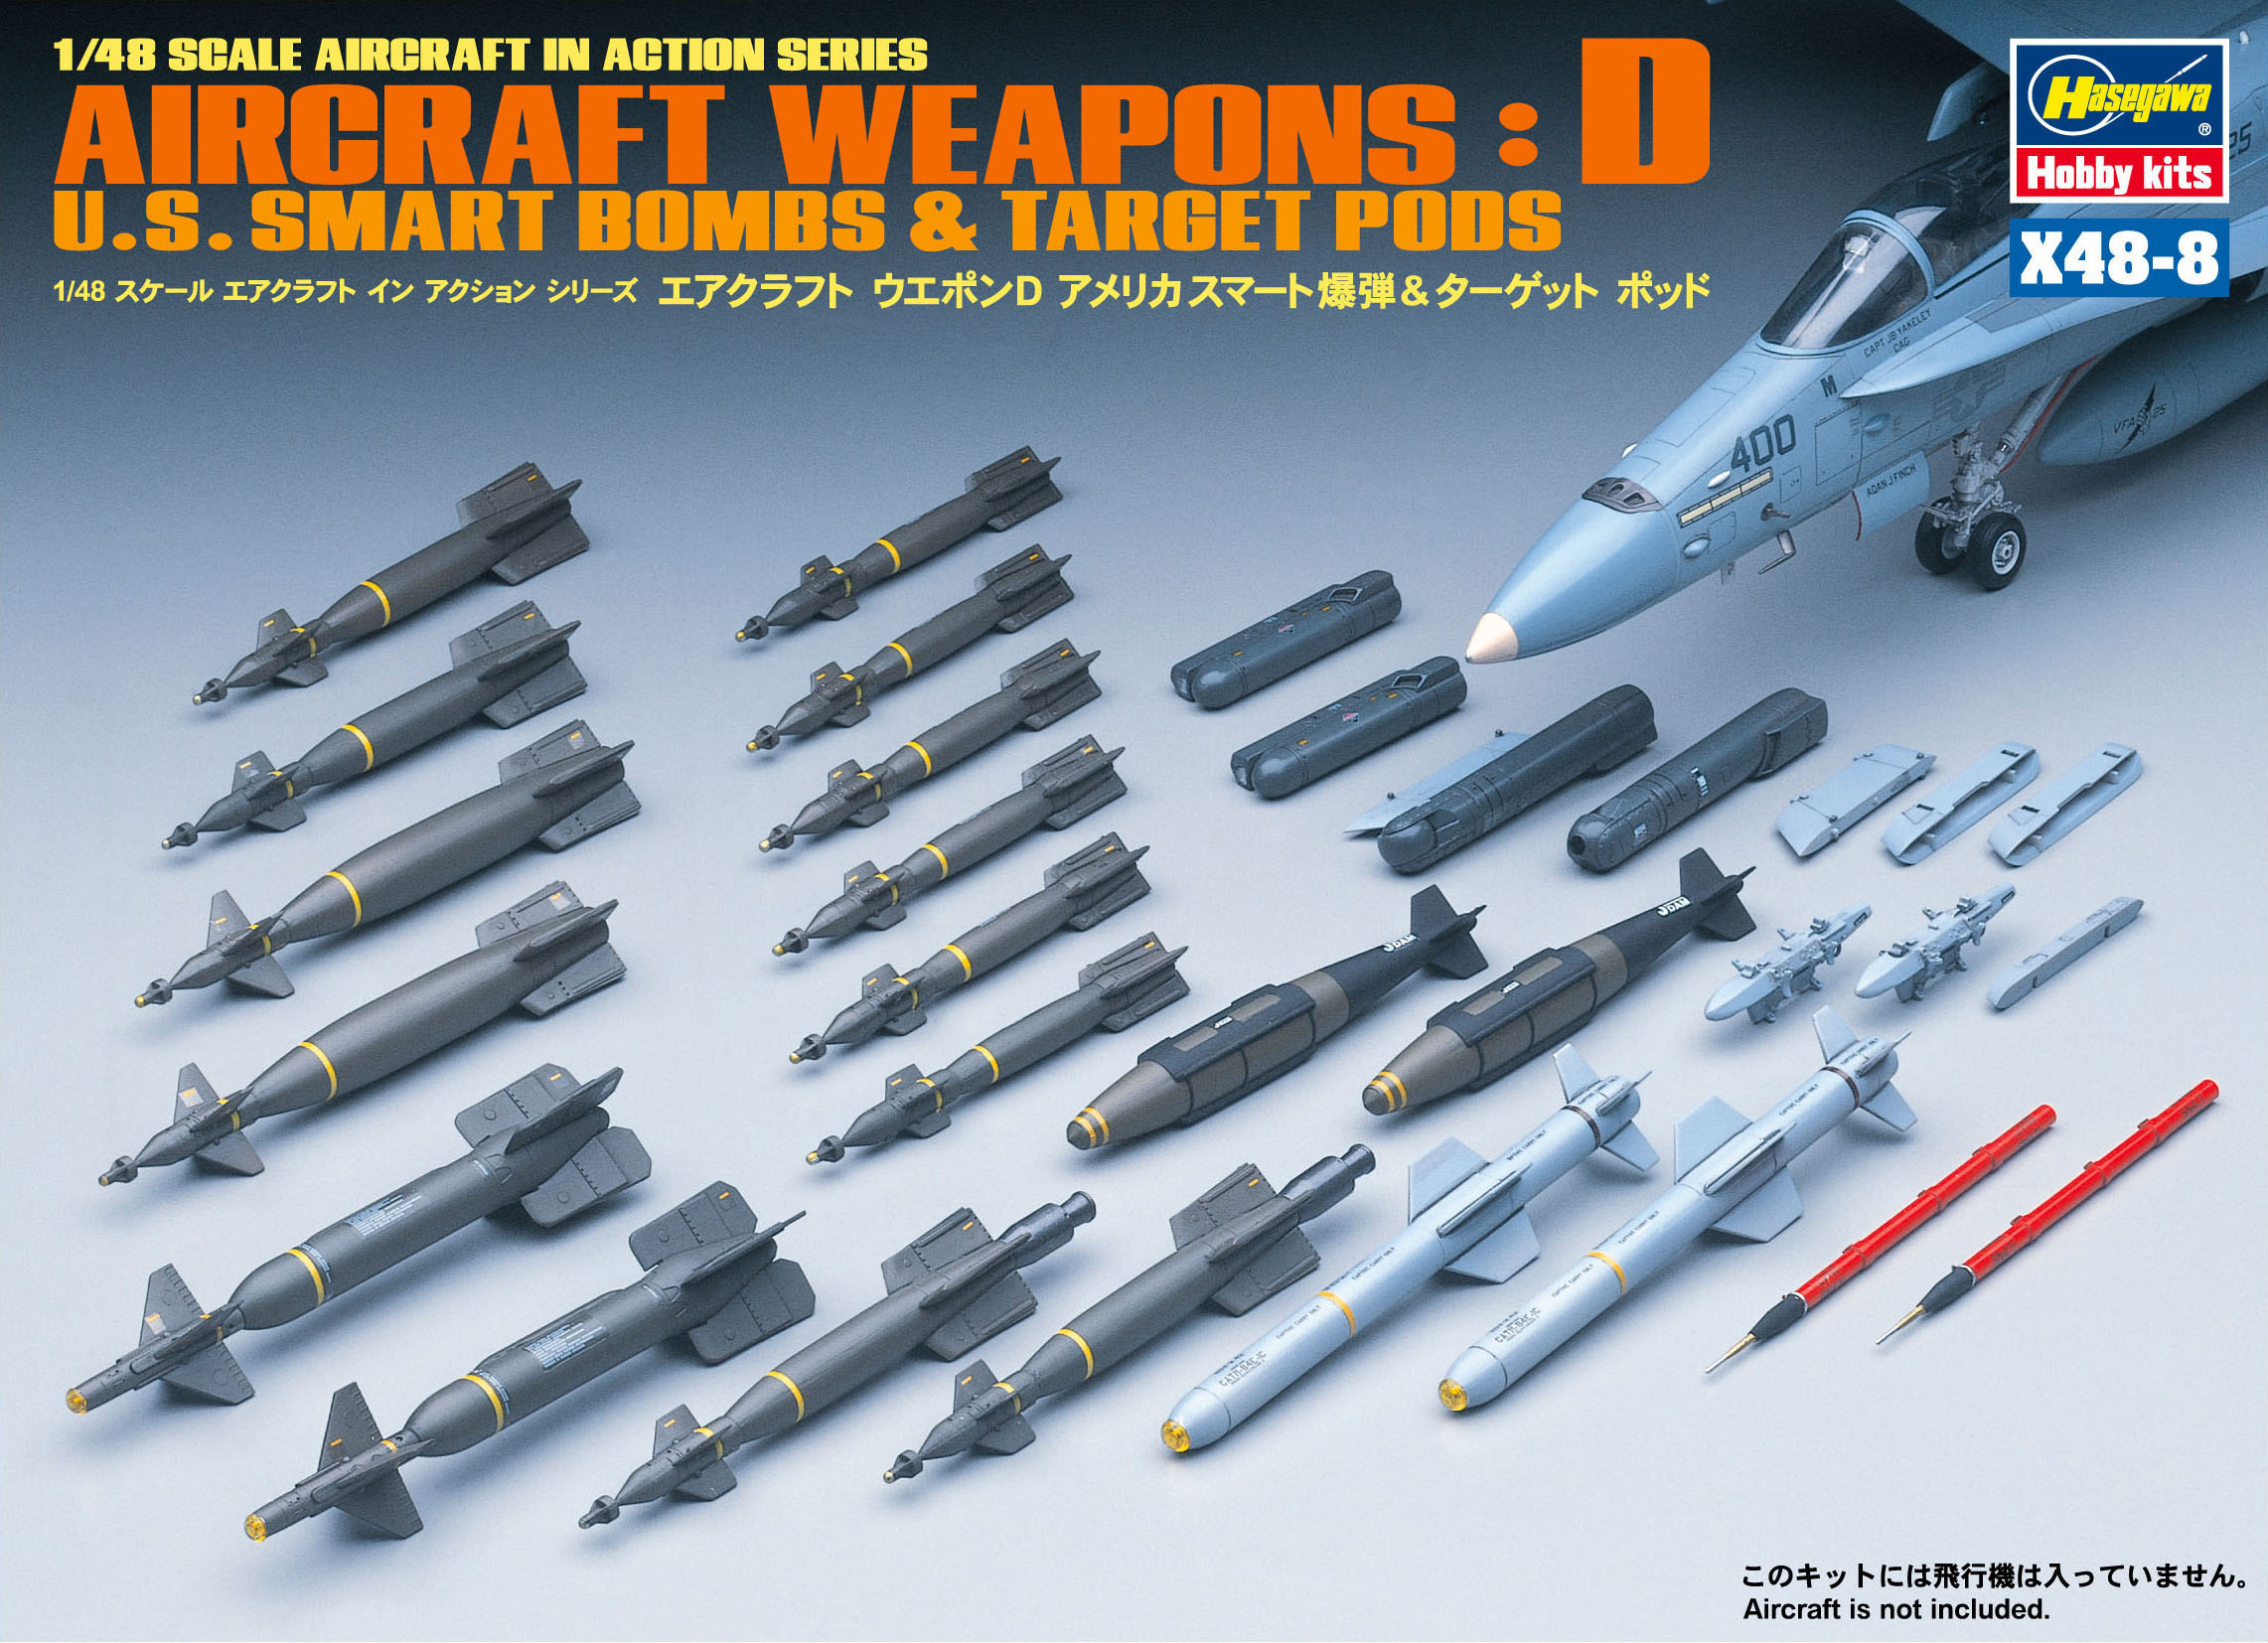 Hasegawa 1/48 US Aircraft Weapons D, U.S. Smart Bomns & Target Pods X48-8